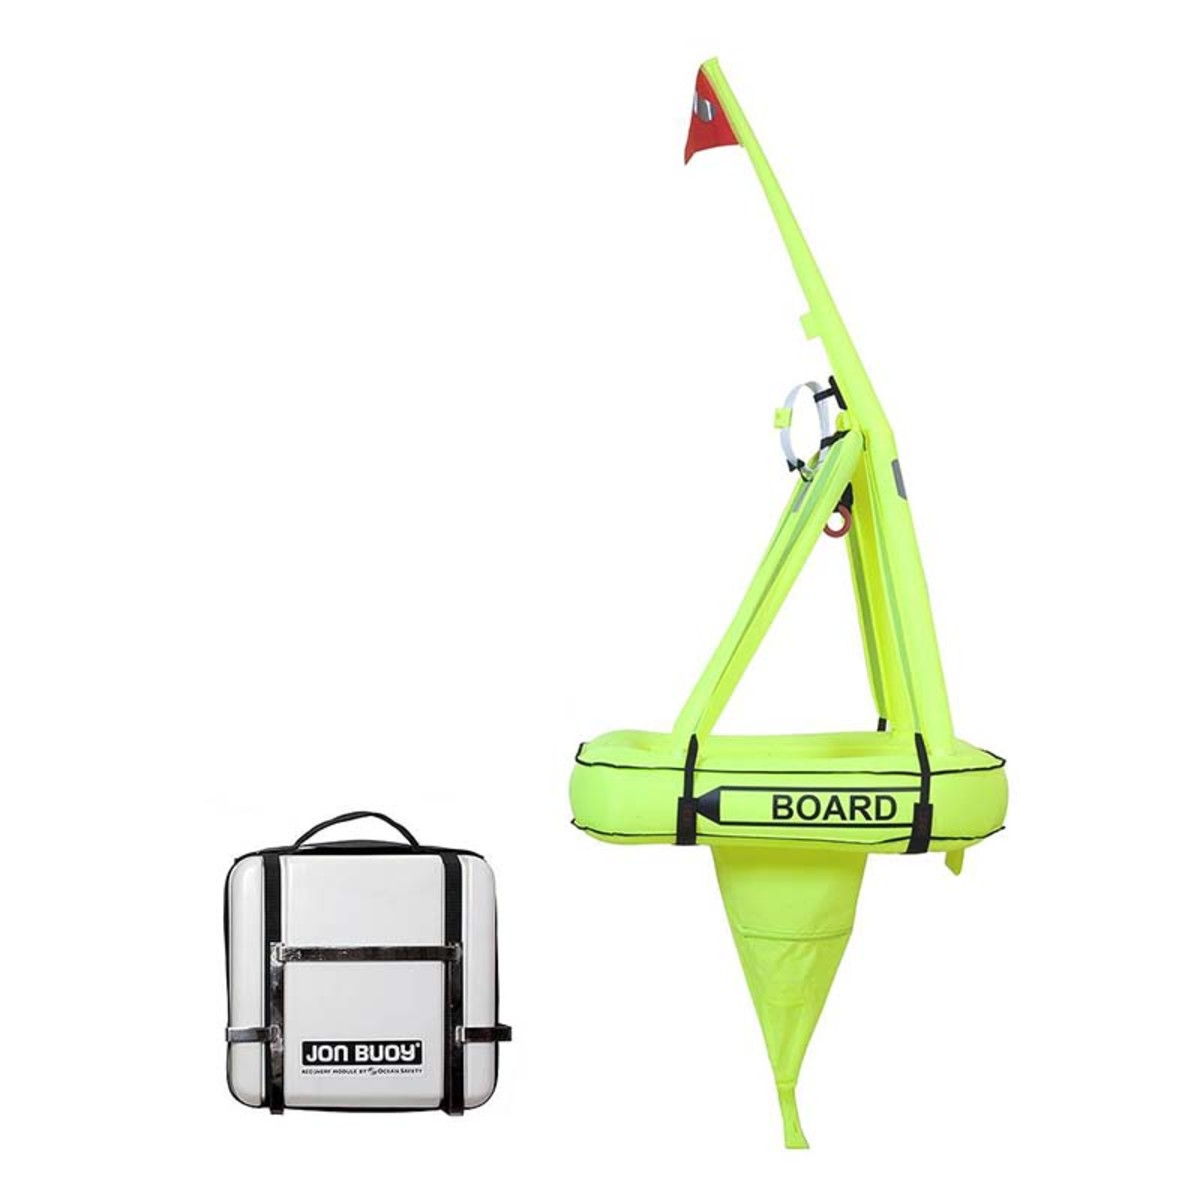 That the Jonbuoy wasn't found is an indication of just how hard it is to find a person in the water. These buoys are bright, chartreuse-colored, man-overboard devices with a raised pole and a flag specifically designed to make a person overboard more visible.